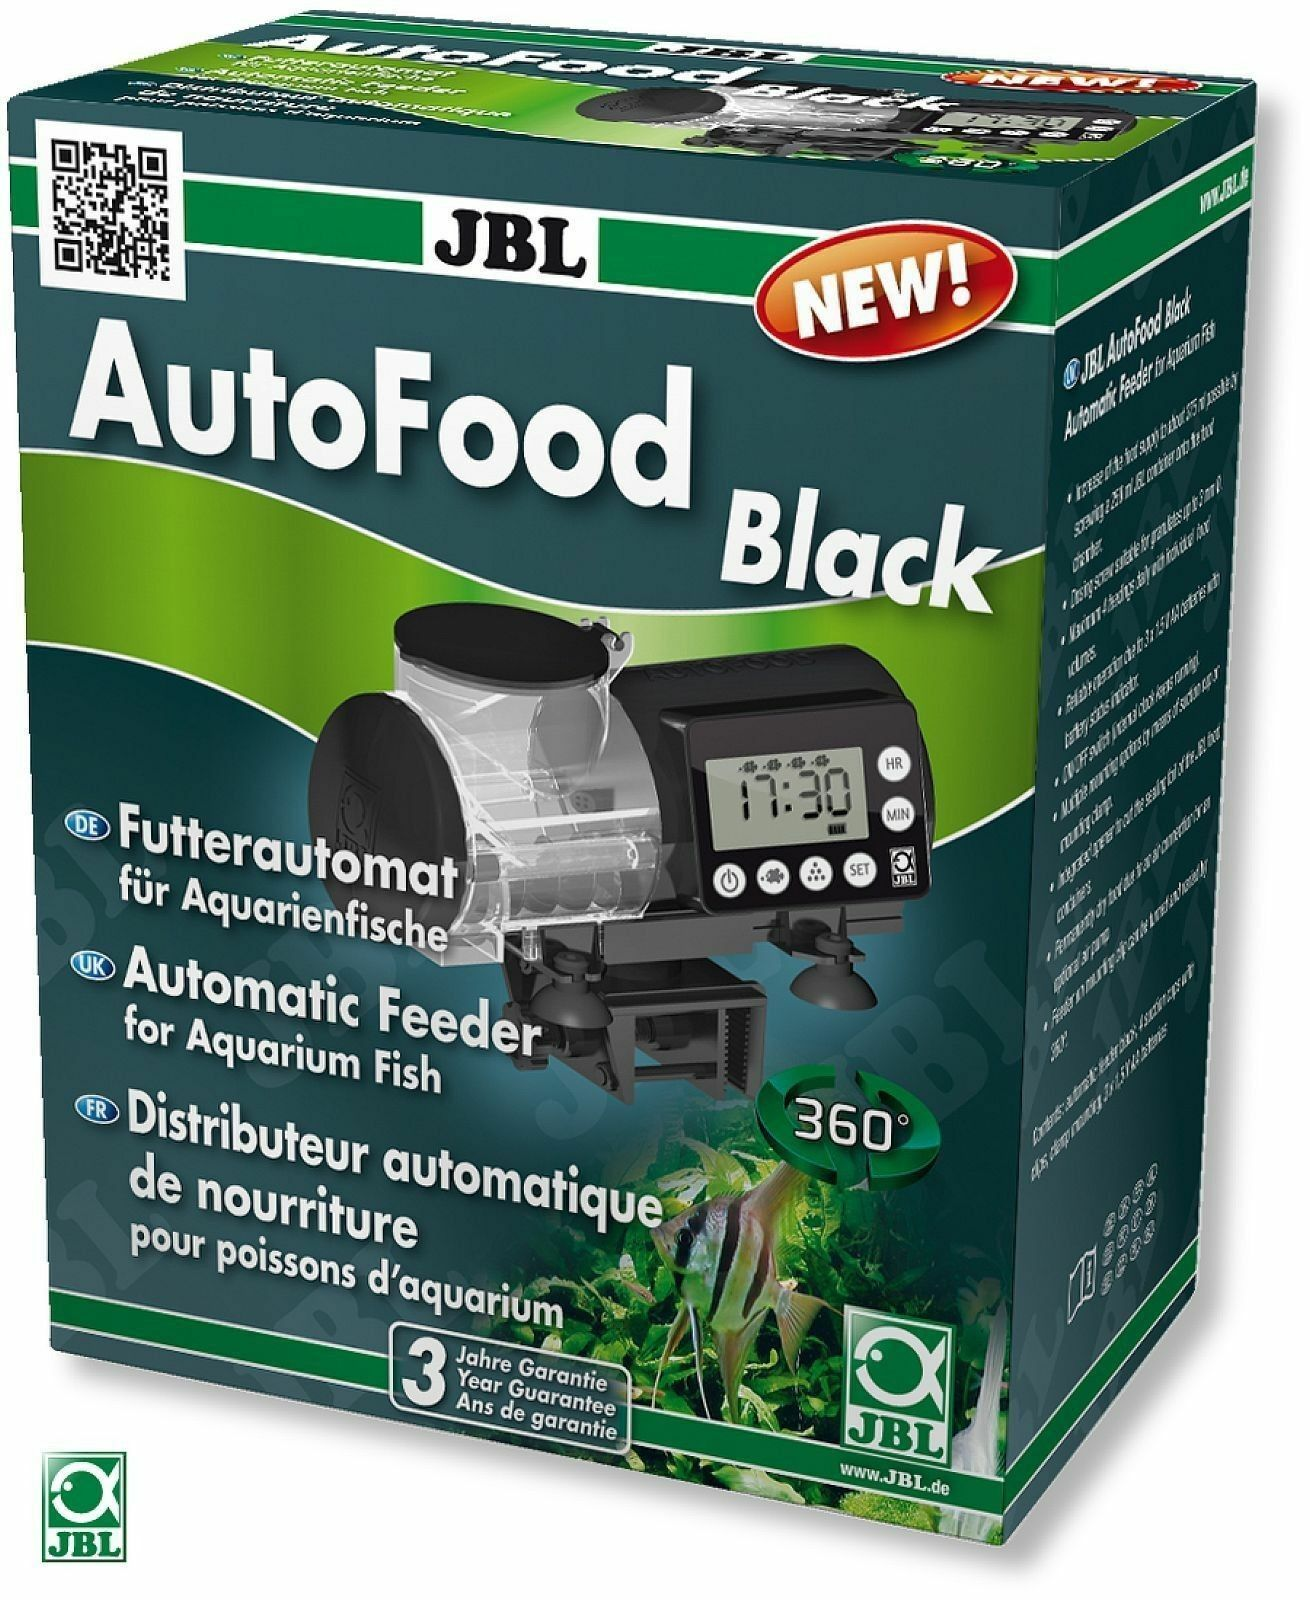 Jbl autofood black automatic feeder for aquarium fish for Jbl aquarium